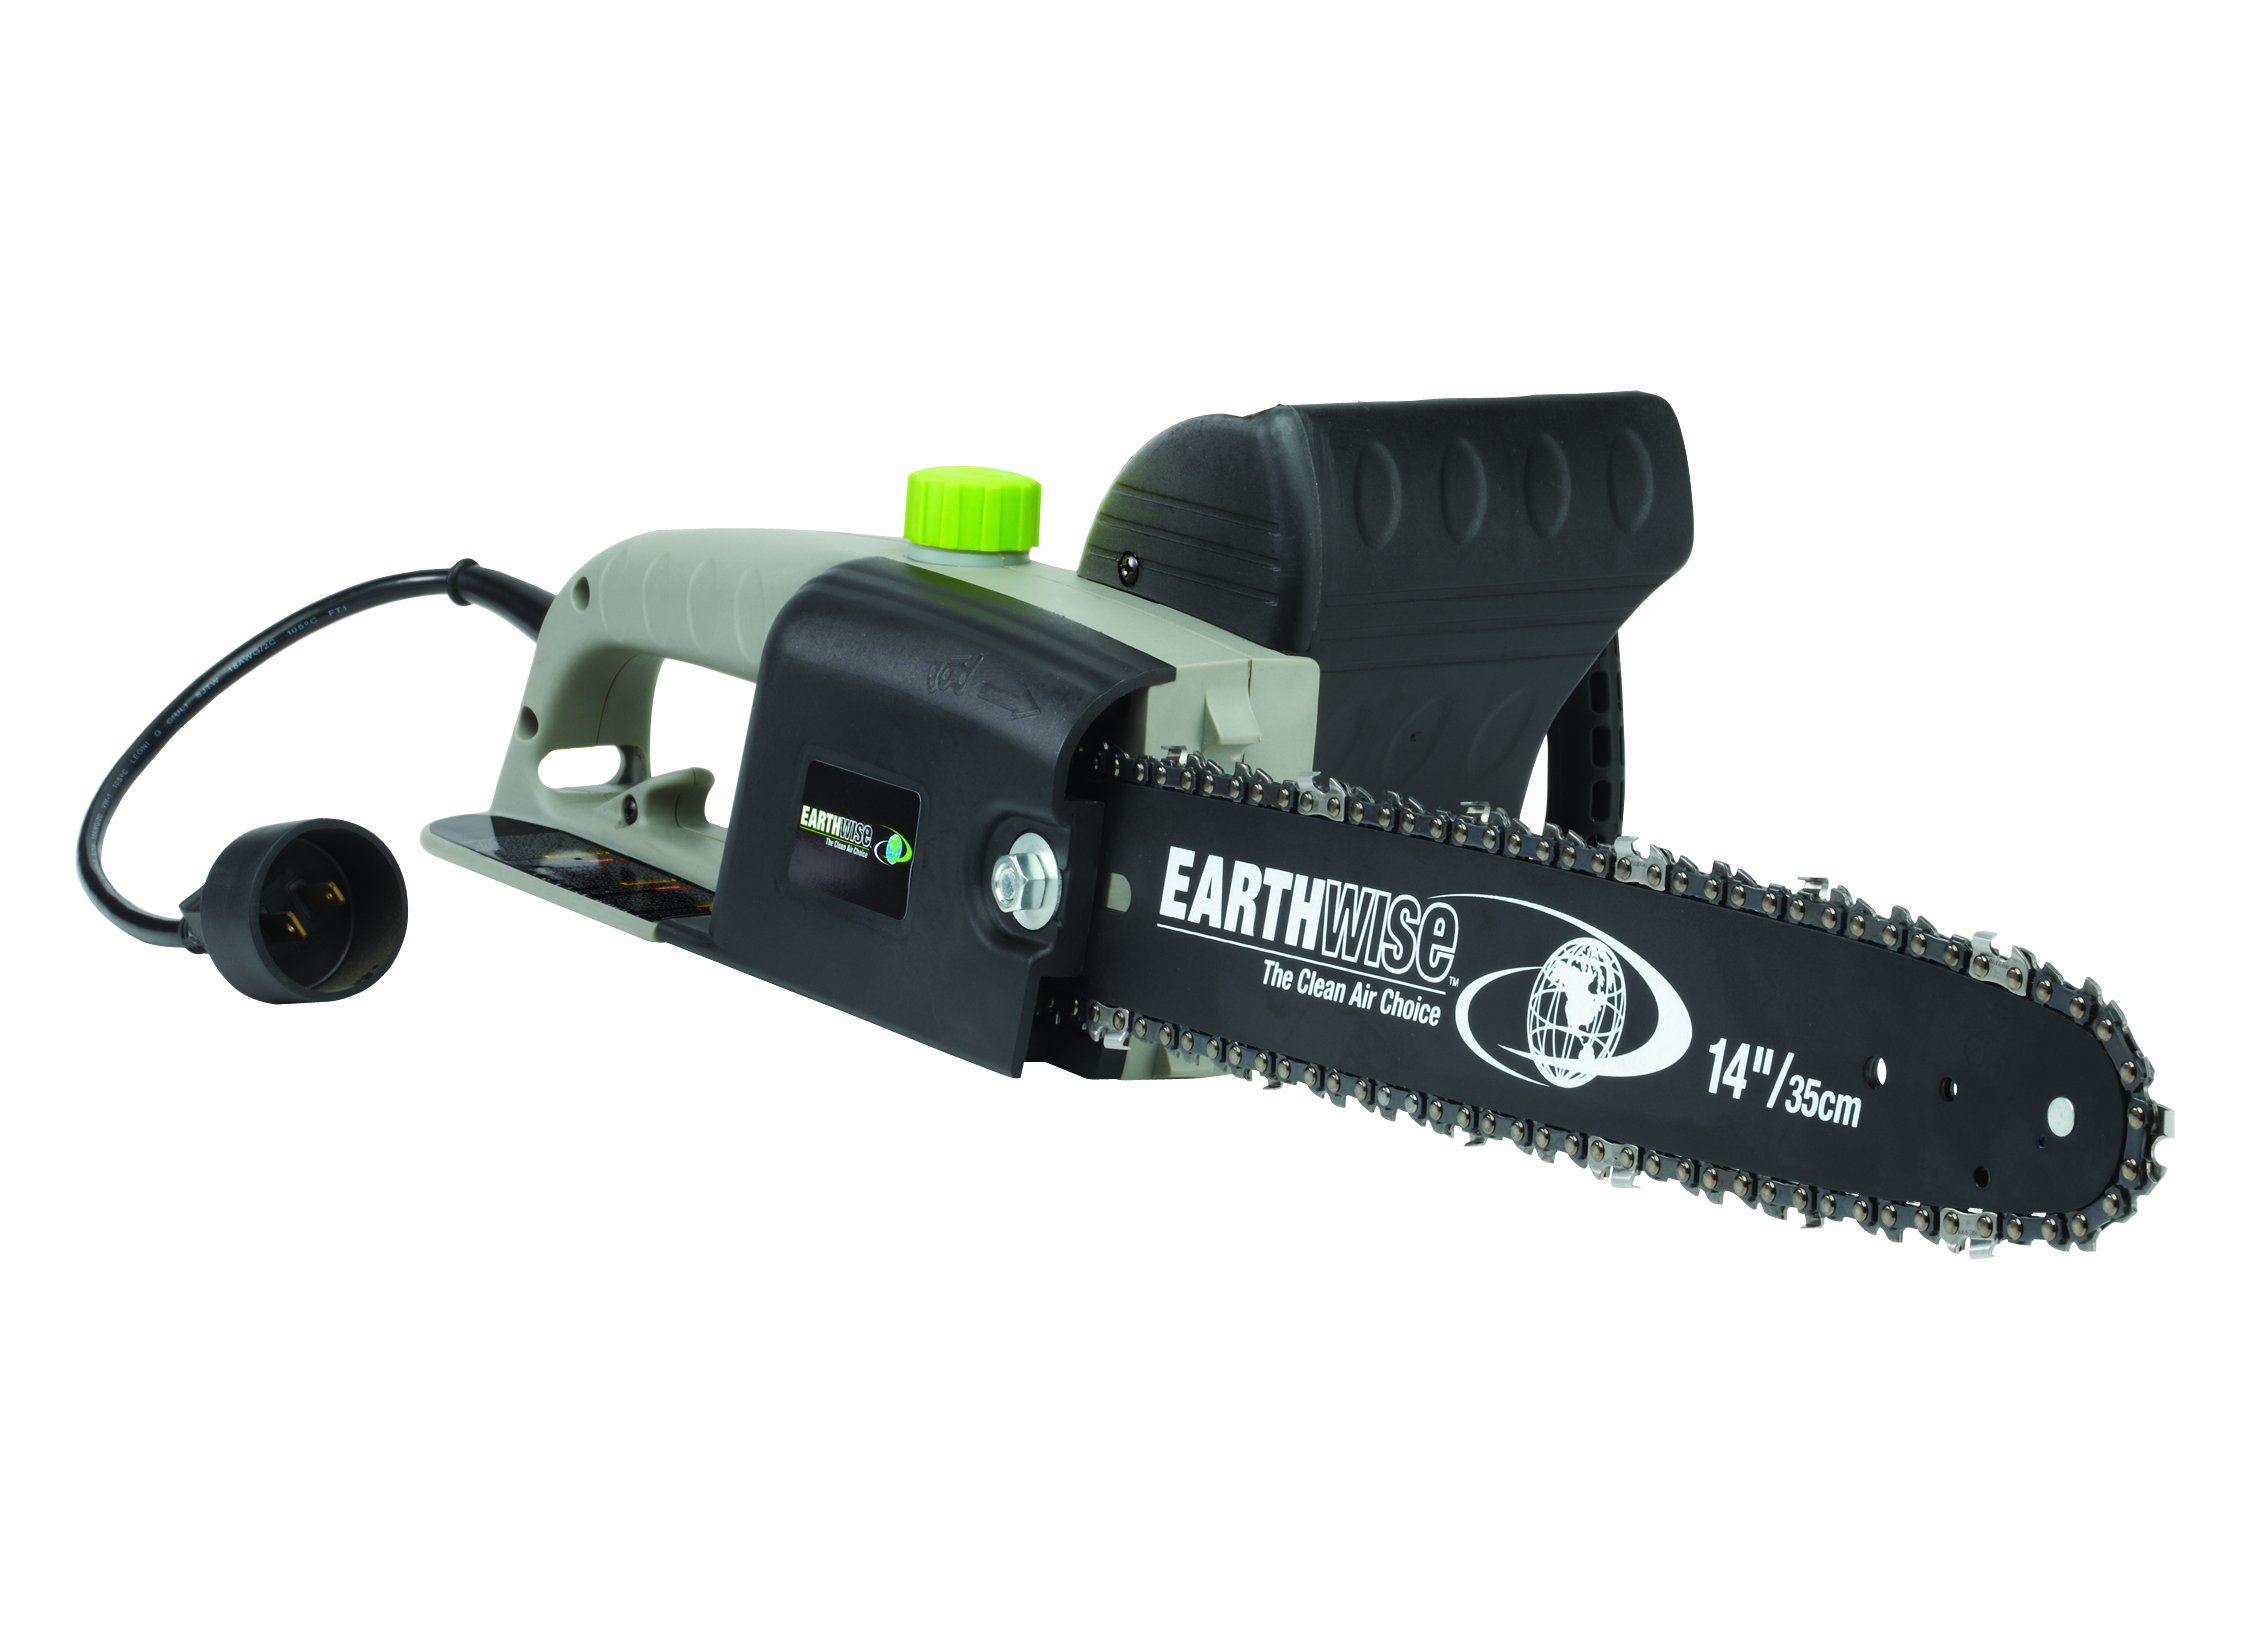 Cheap earthwise chainsaw find earthwise chainsaw deals on line at get quotations earthwise 14 inch corded 8 amp chainsaw greentooth Image collections